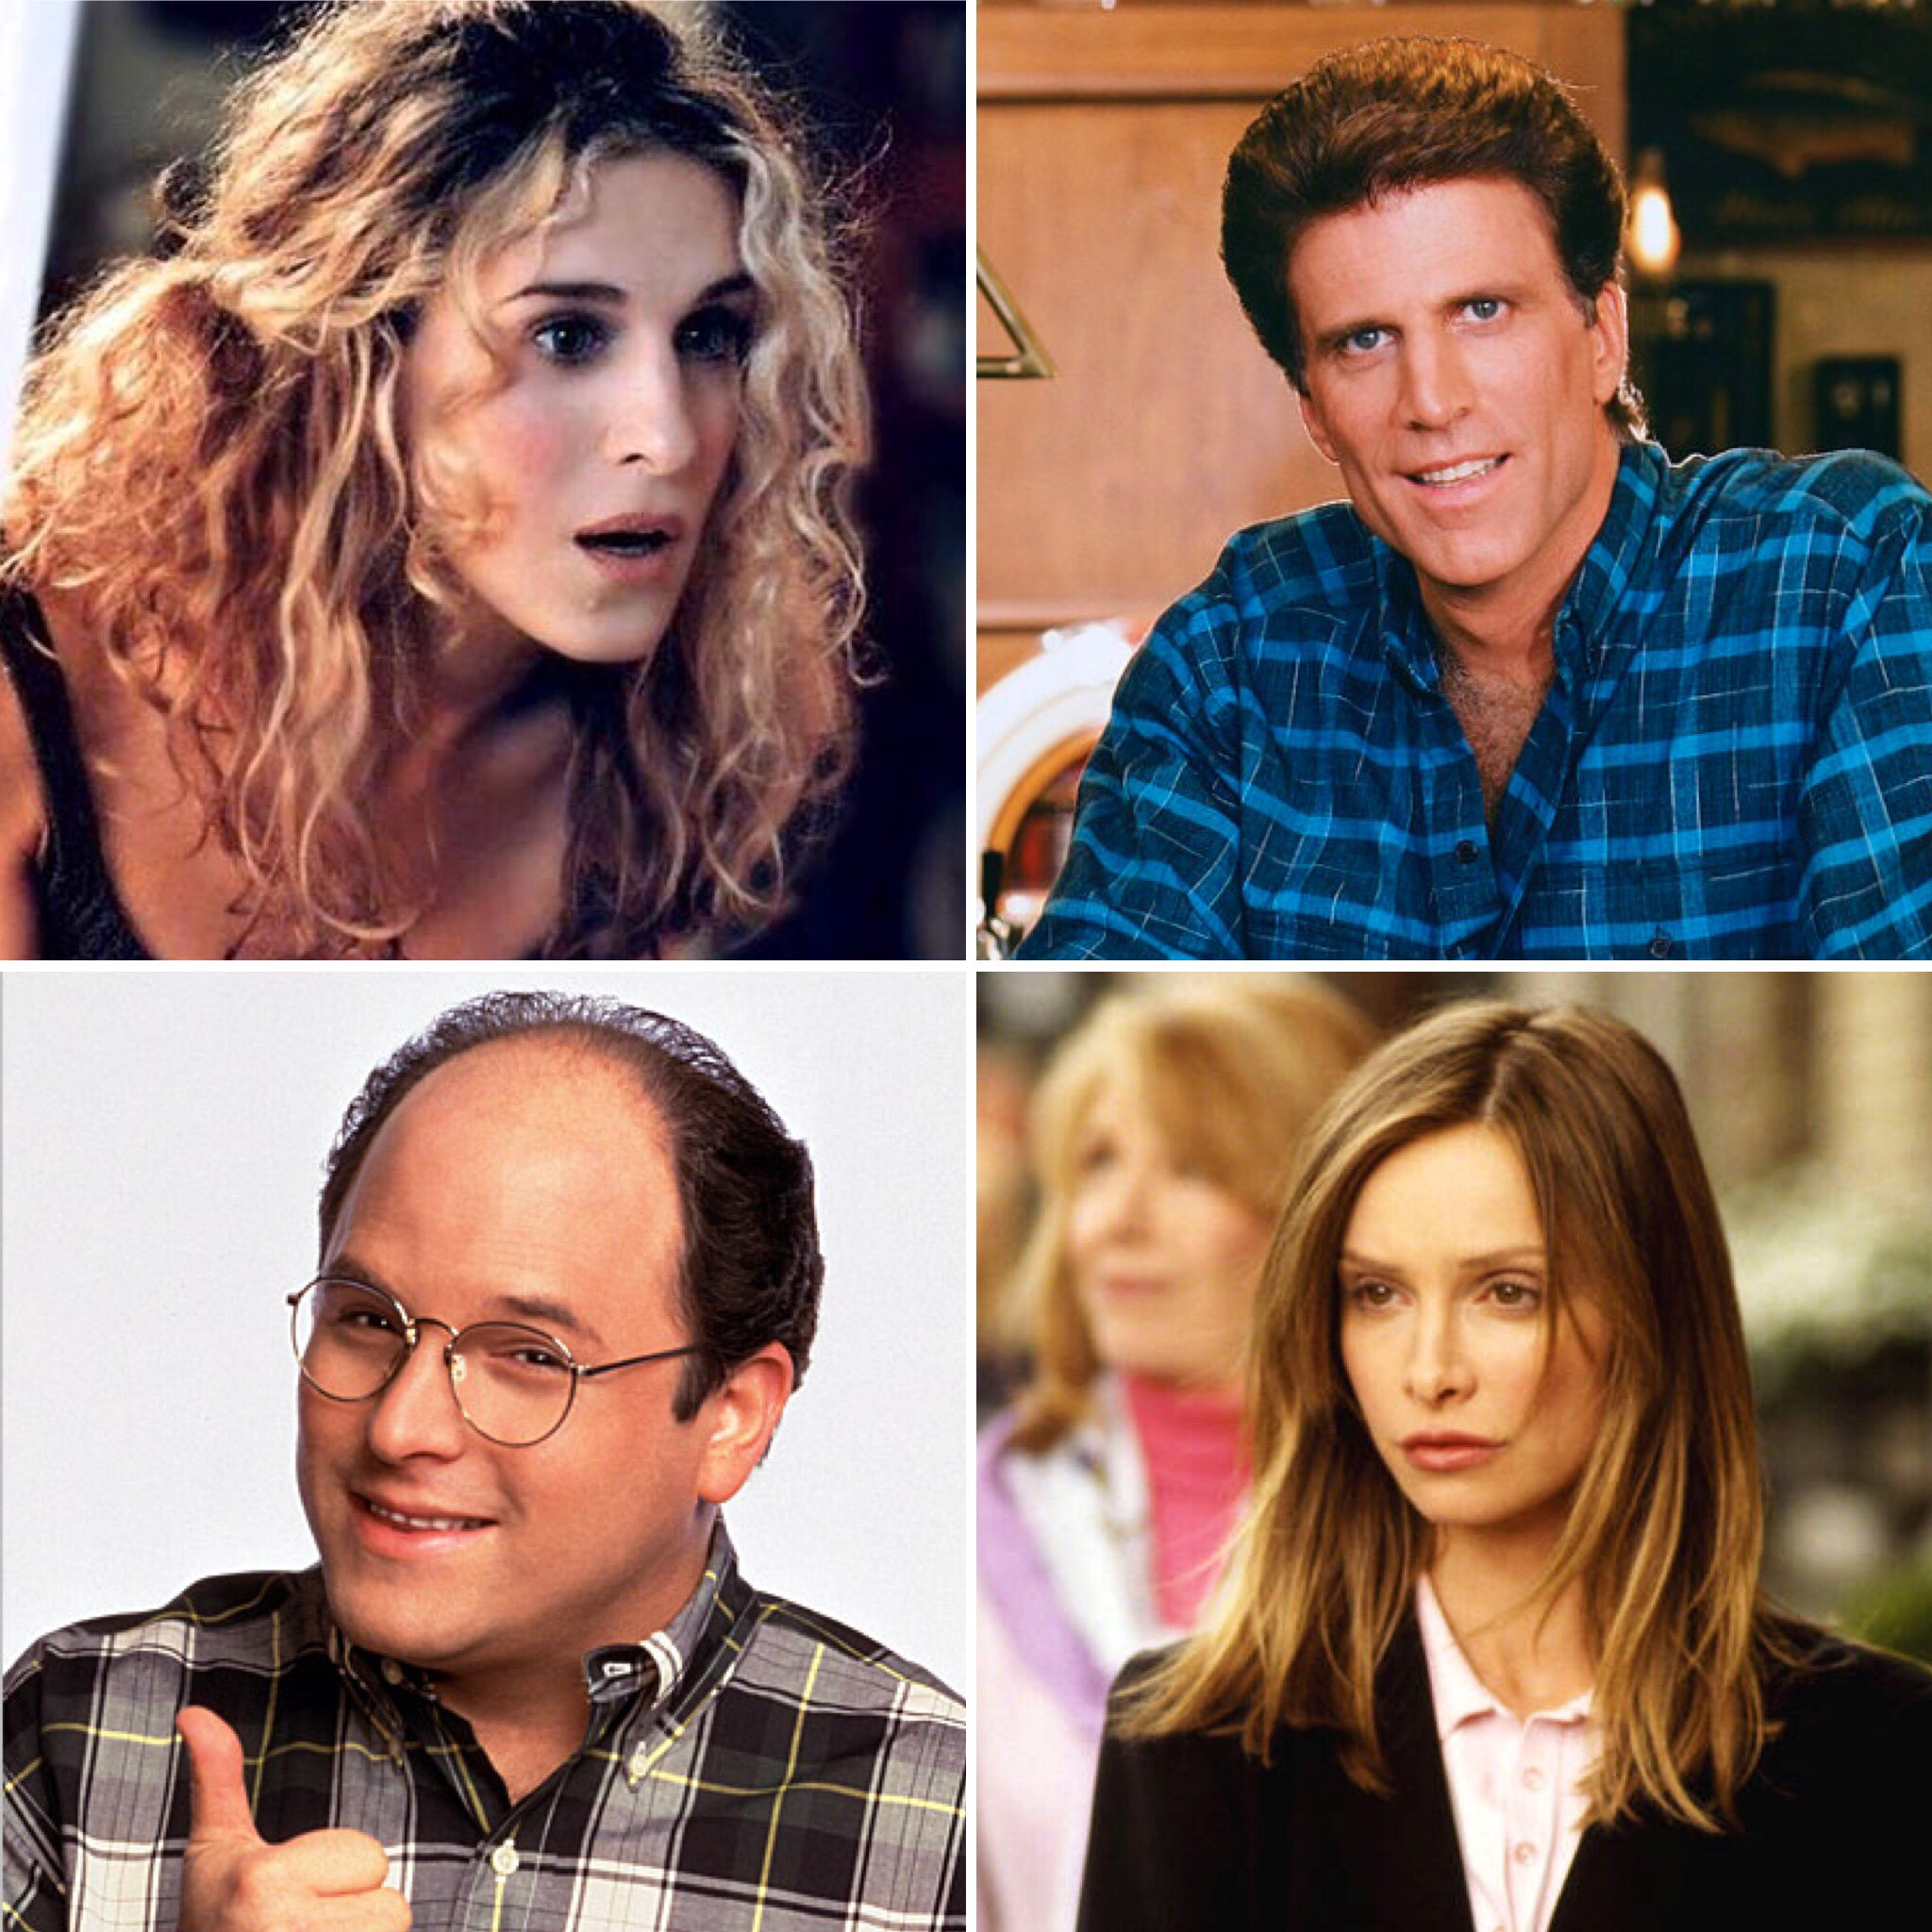 The Next '90s Sitcom To Be Revived Will Be… - Rants and